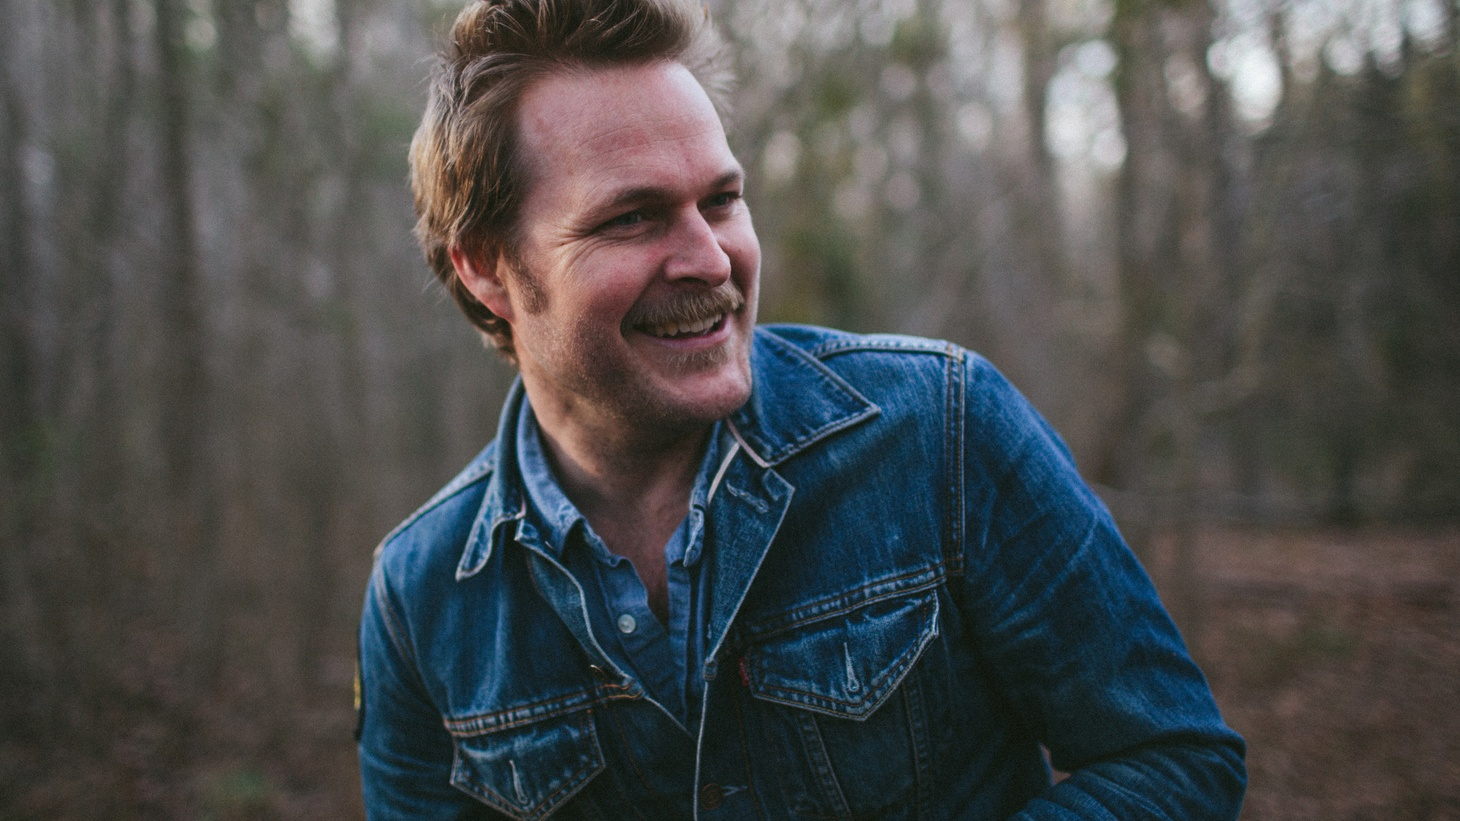 """MC Taylor is the man behind the gentle sound of Hiss Golden Messenger. Their fifth album features Megafaun members Phil and Brad Cook, a collaboration you can hear on Today's Top Tune """"Mahogany Dread""""."""